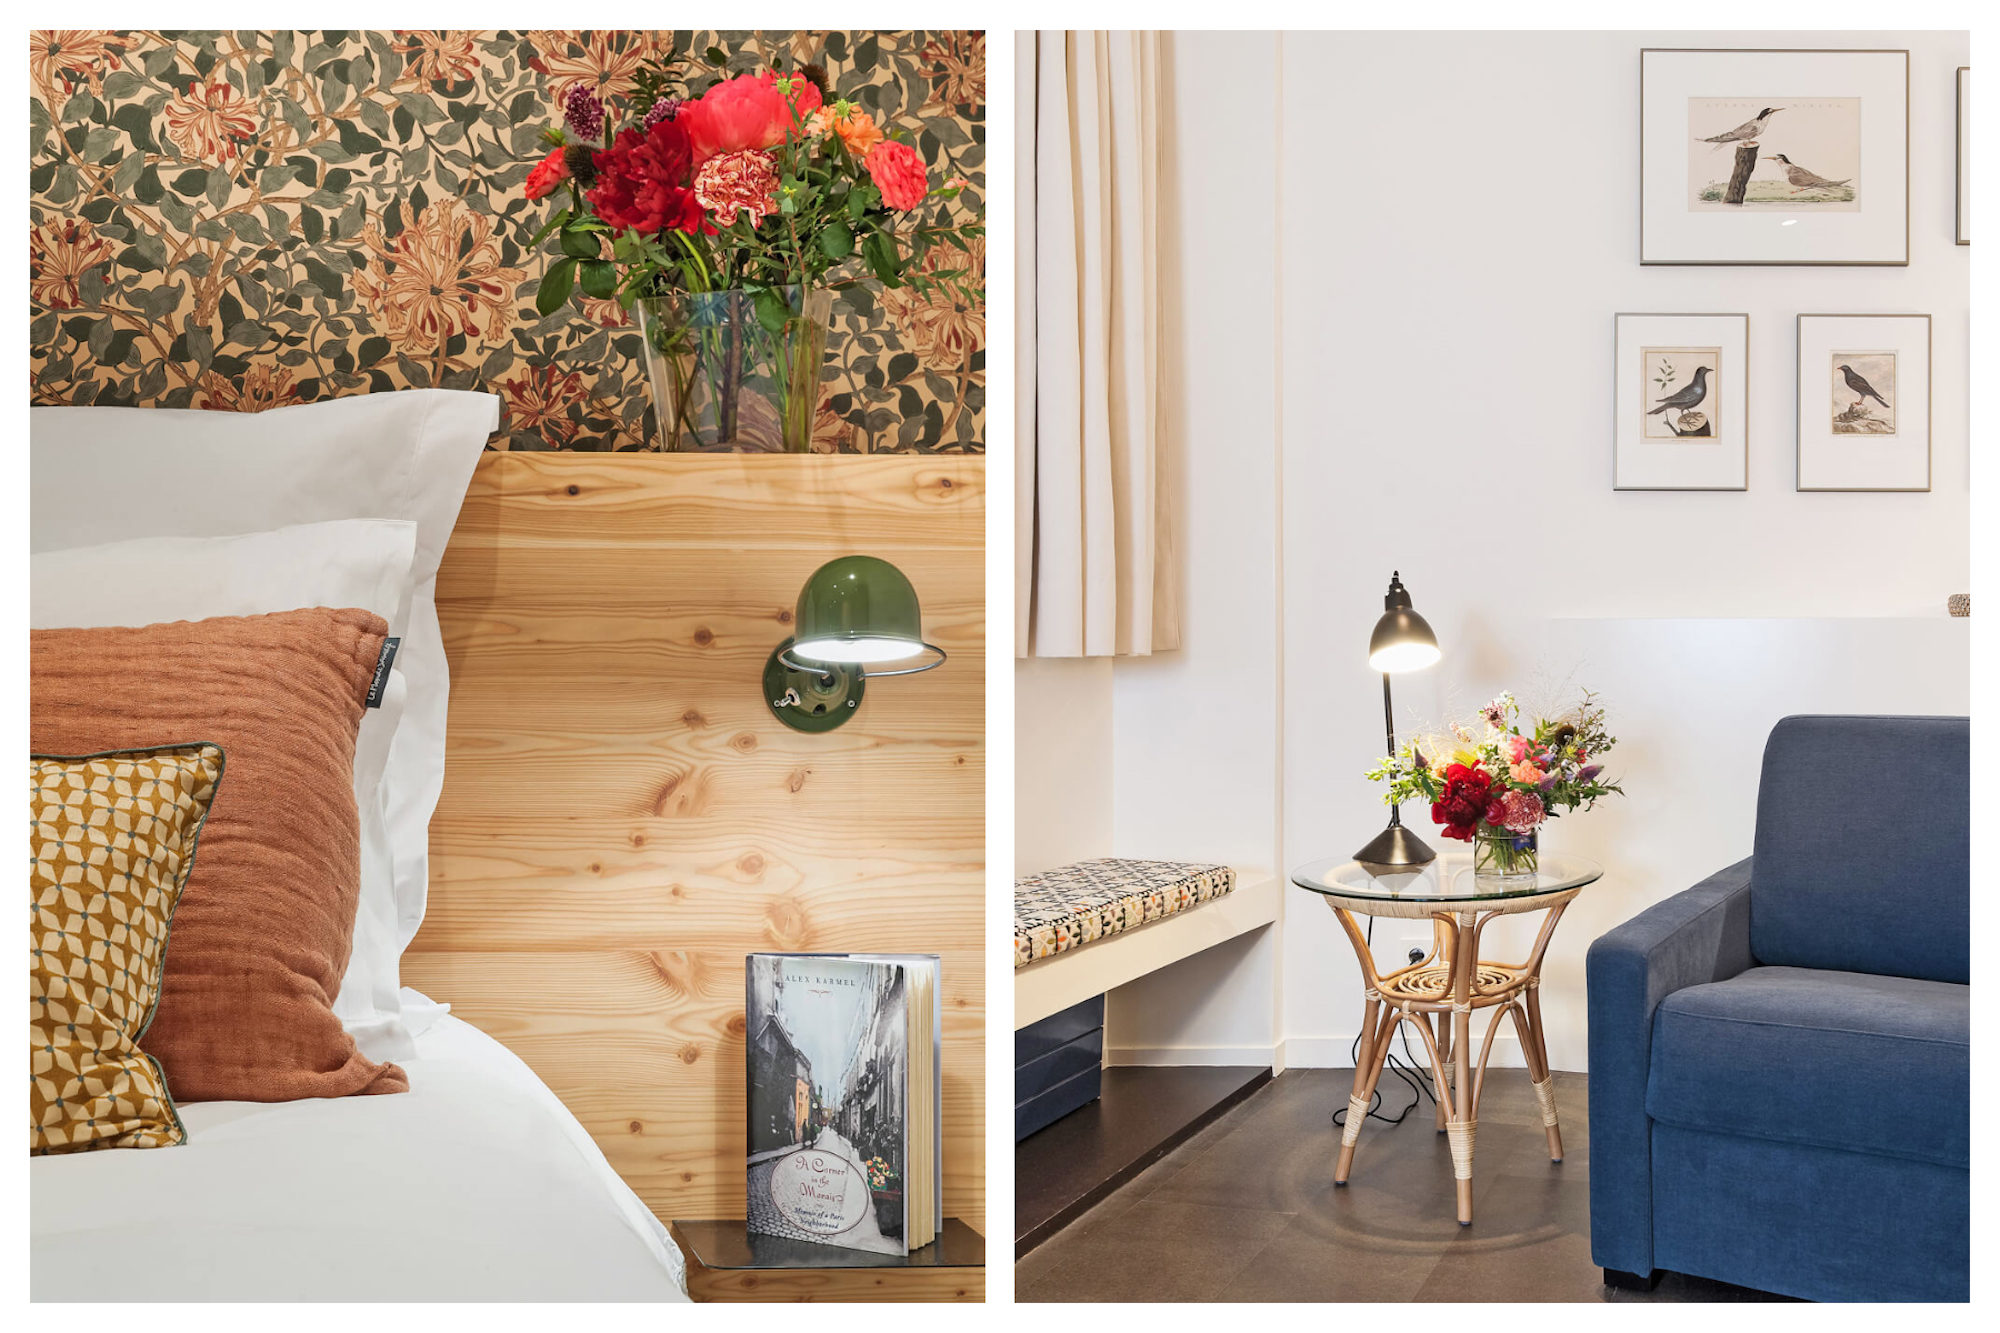 Favorite spots to rent an apartment in Paris include Hotel de Ville in the city centre, like this 1-bedroom apartment with a cozy bedroom with flowery wallpaper (left). The stylish living room of a Paris rental apartment with a blue armchair and bird pictures on the walls (right).